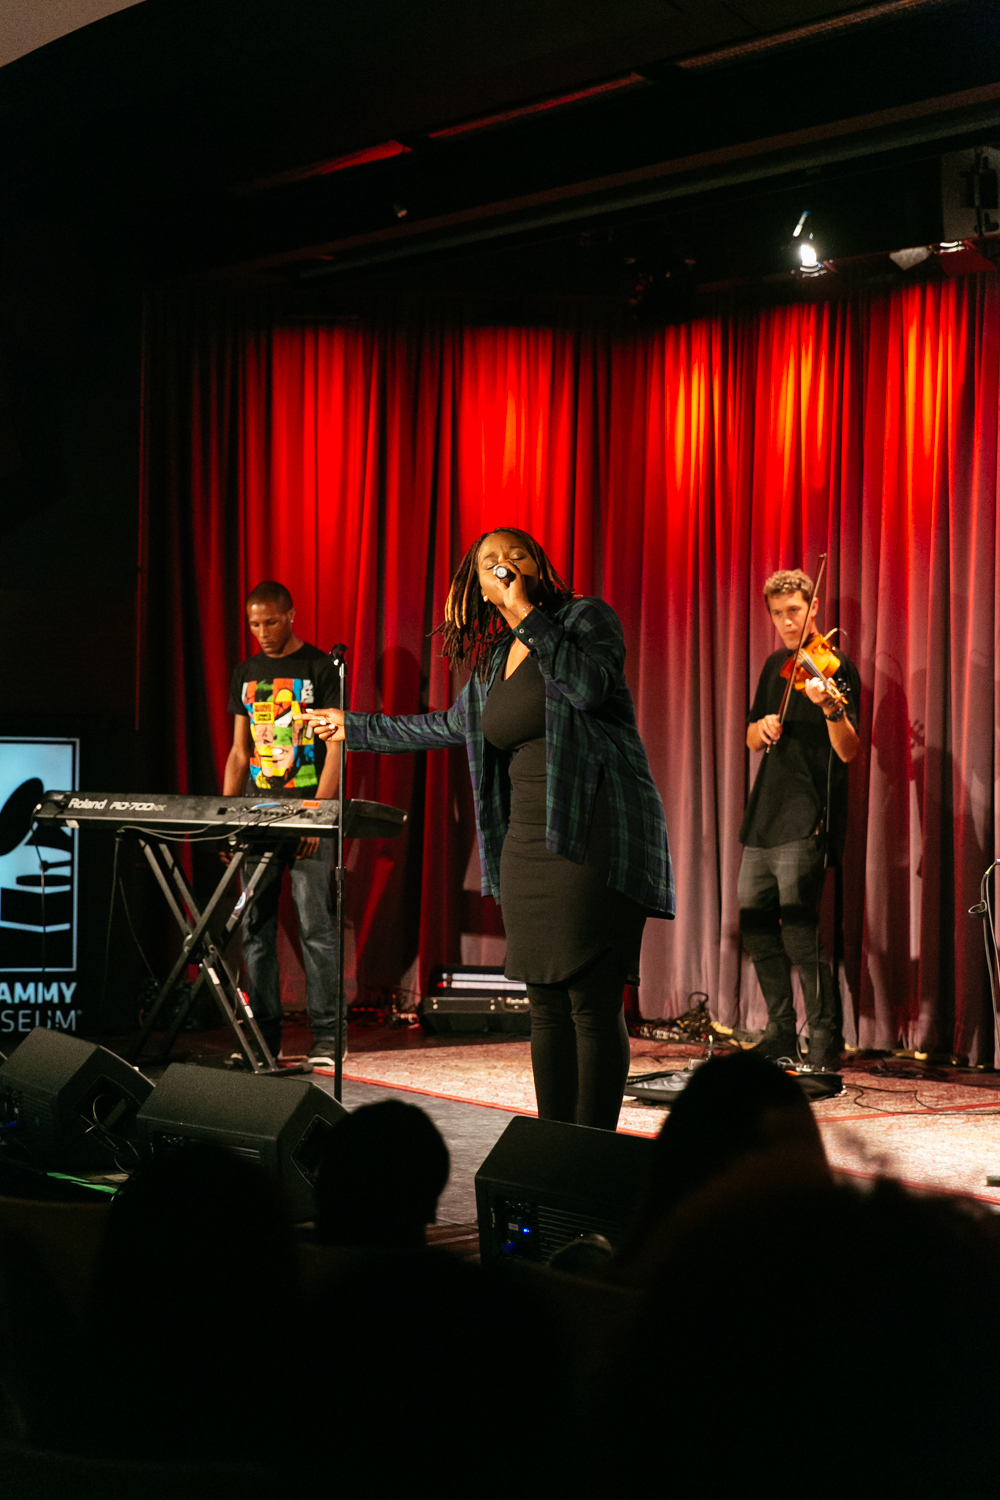 PJ performs at Blackout Music & Film Festival (Aug 29) at The GRAMMY Museum in Los Angeles.